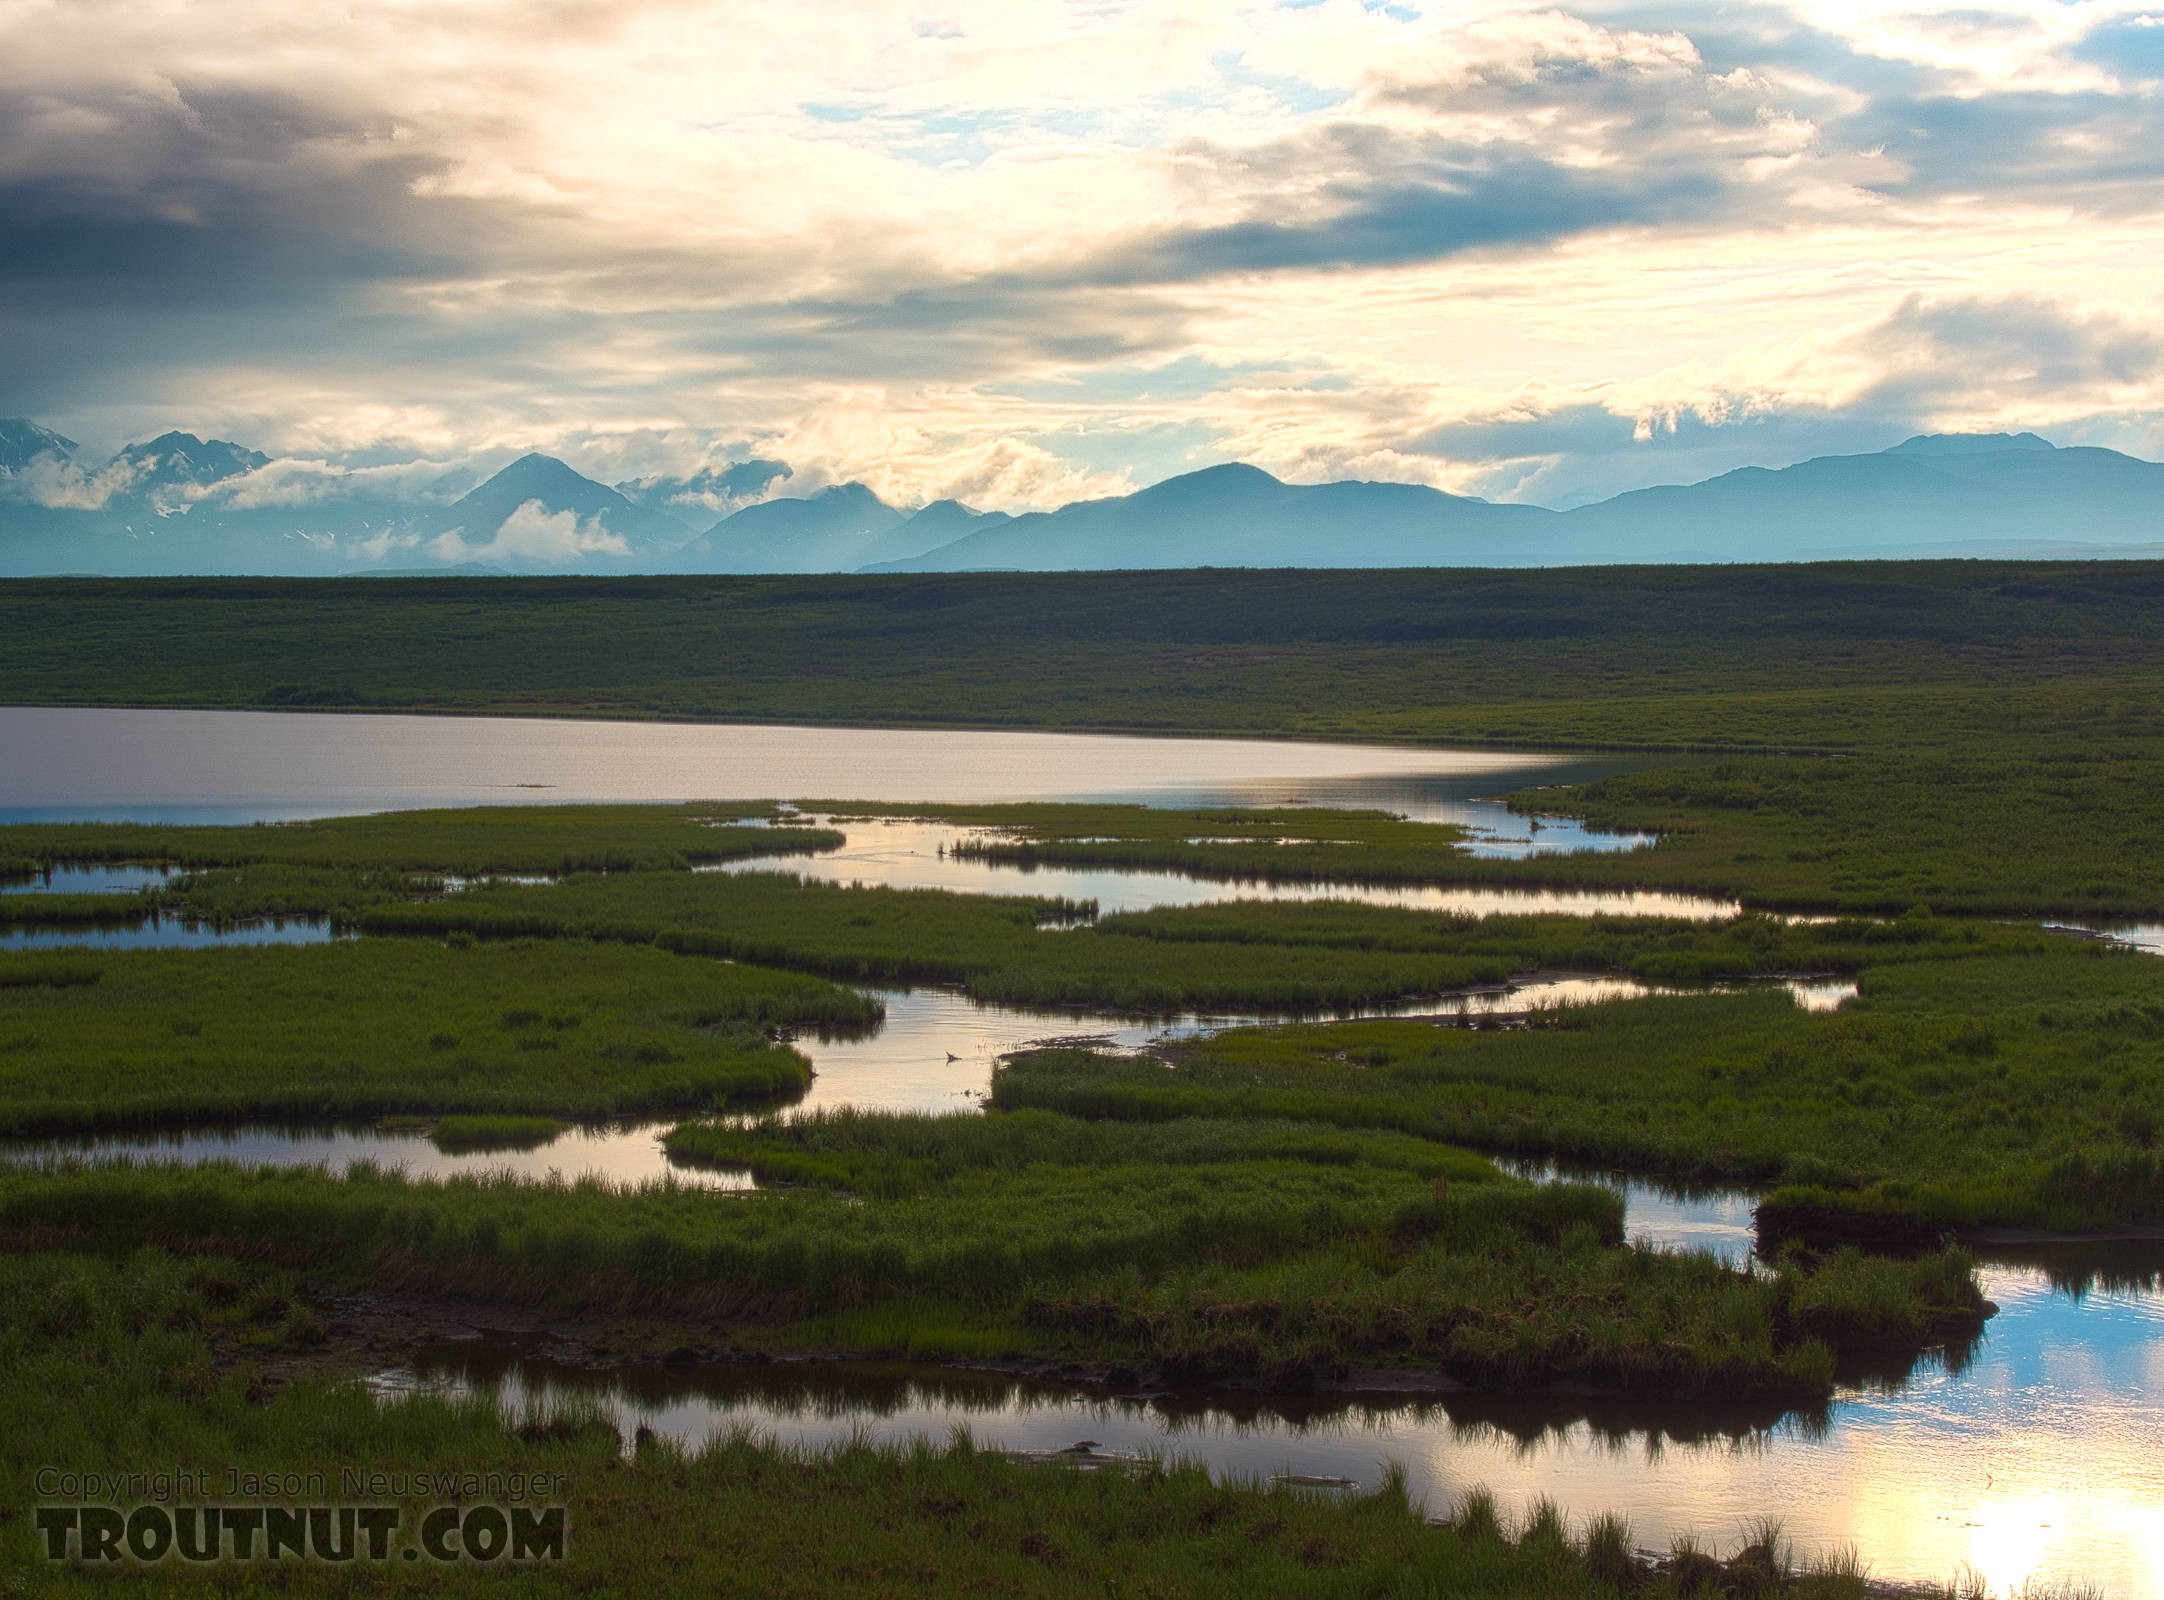 This was one of our first views of the mountains we'd be hiking into, seen from across some lakes in the upper Osar Creek drainage. From Denali Highway in Alaska.